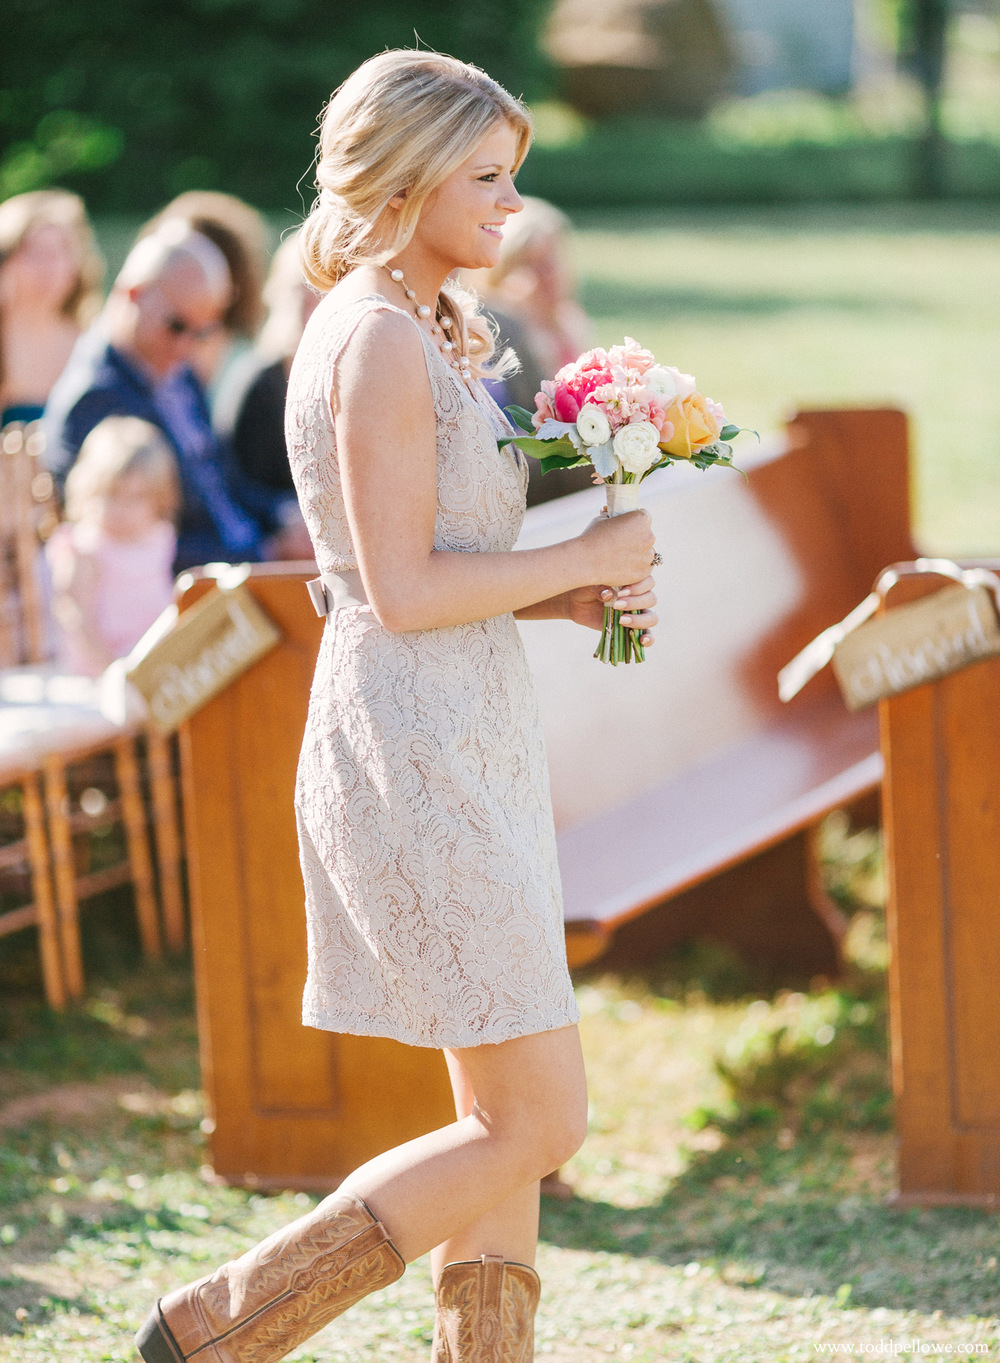 12-gingerwoods-farm-wedding-photography-166.jpg